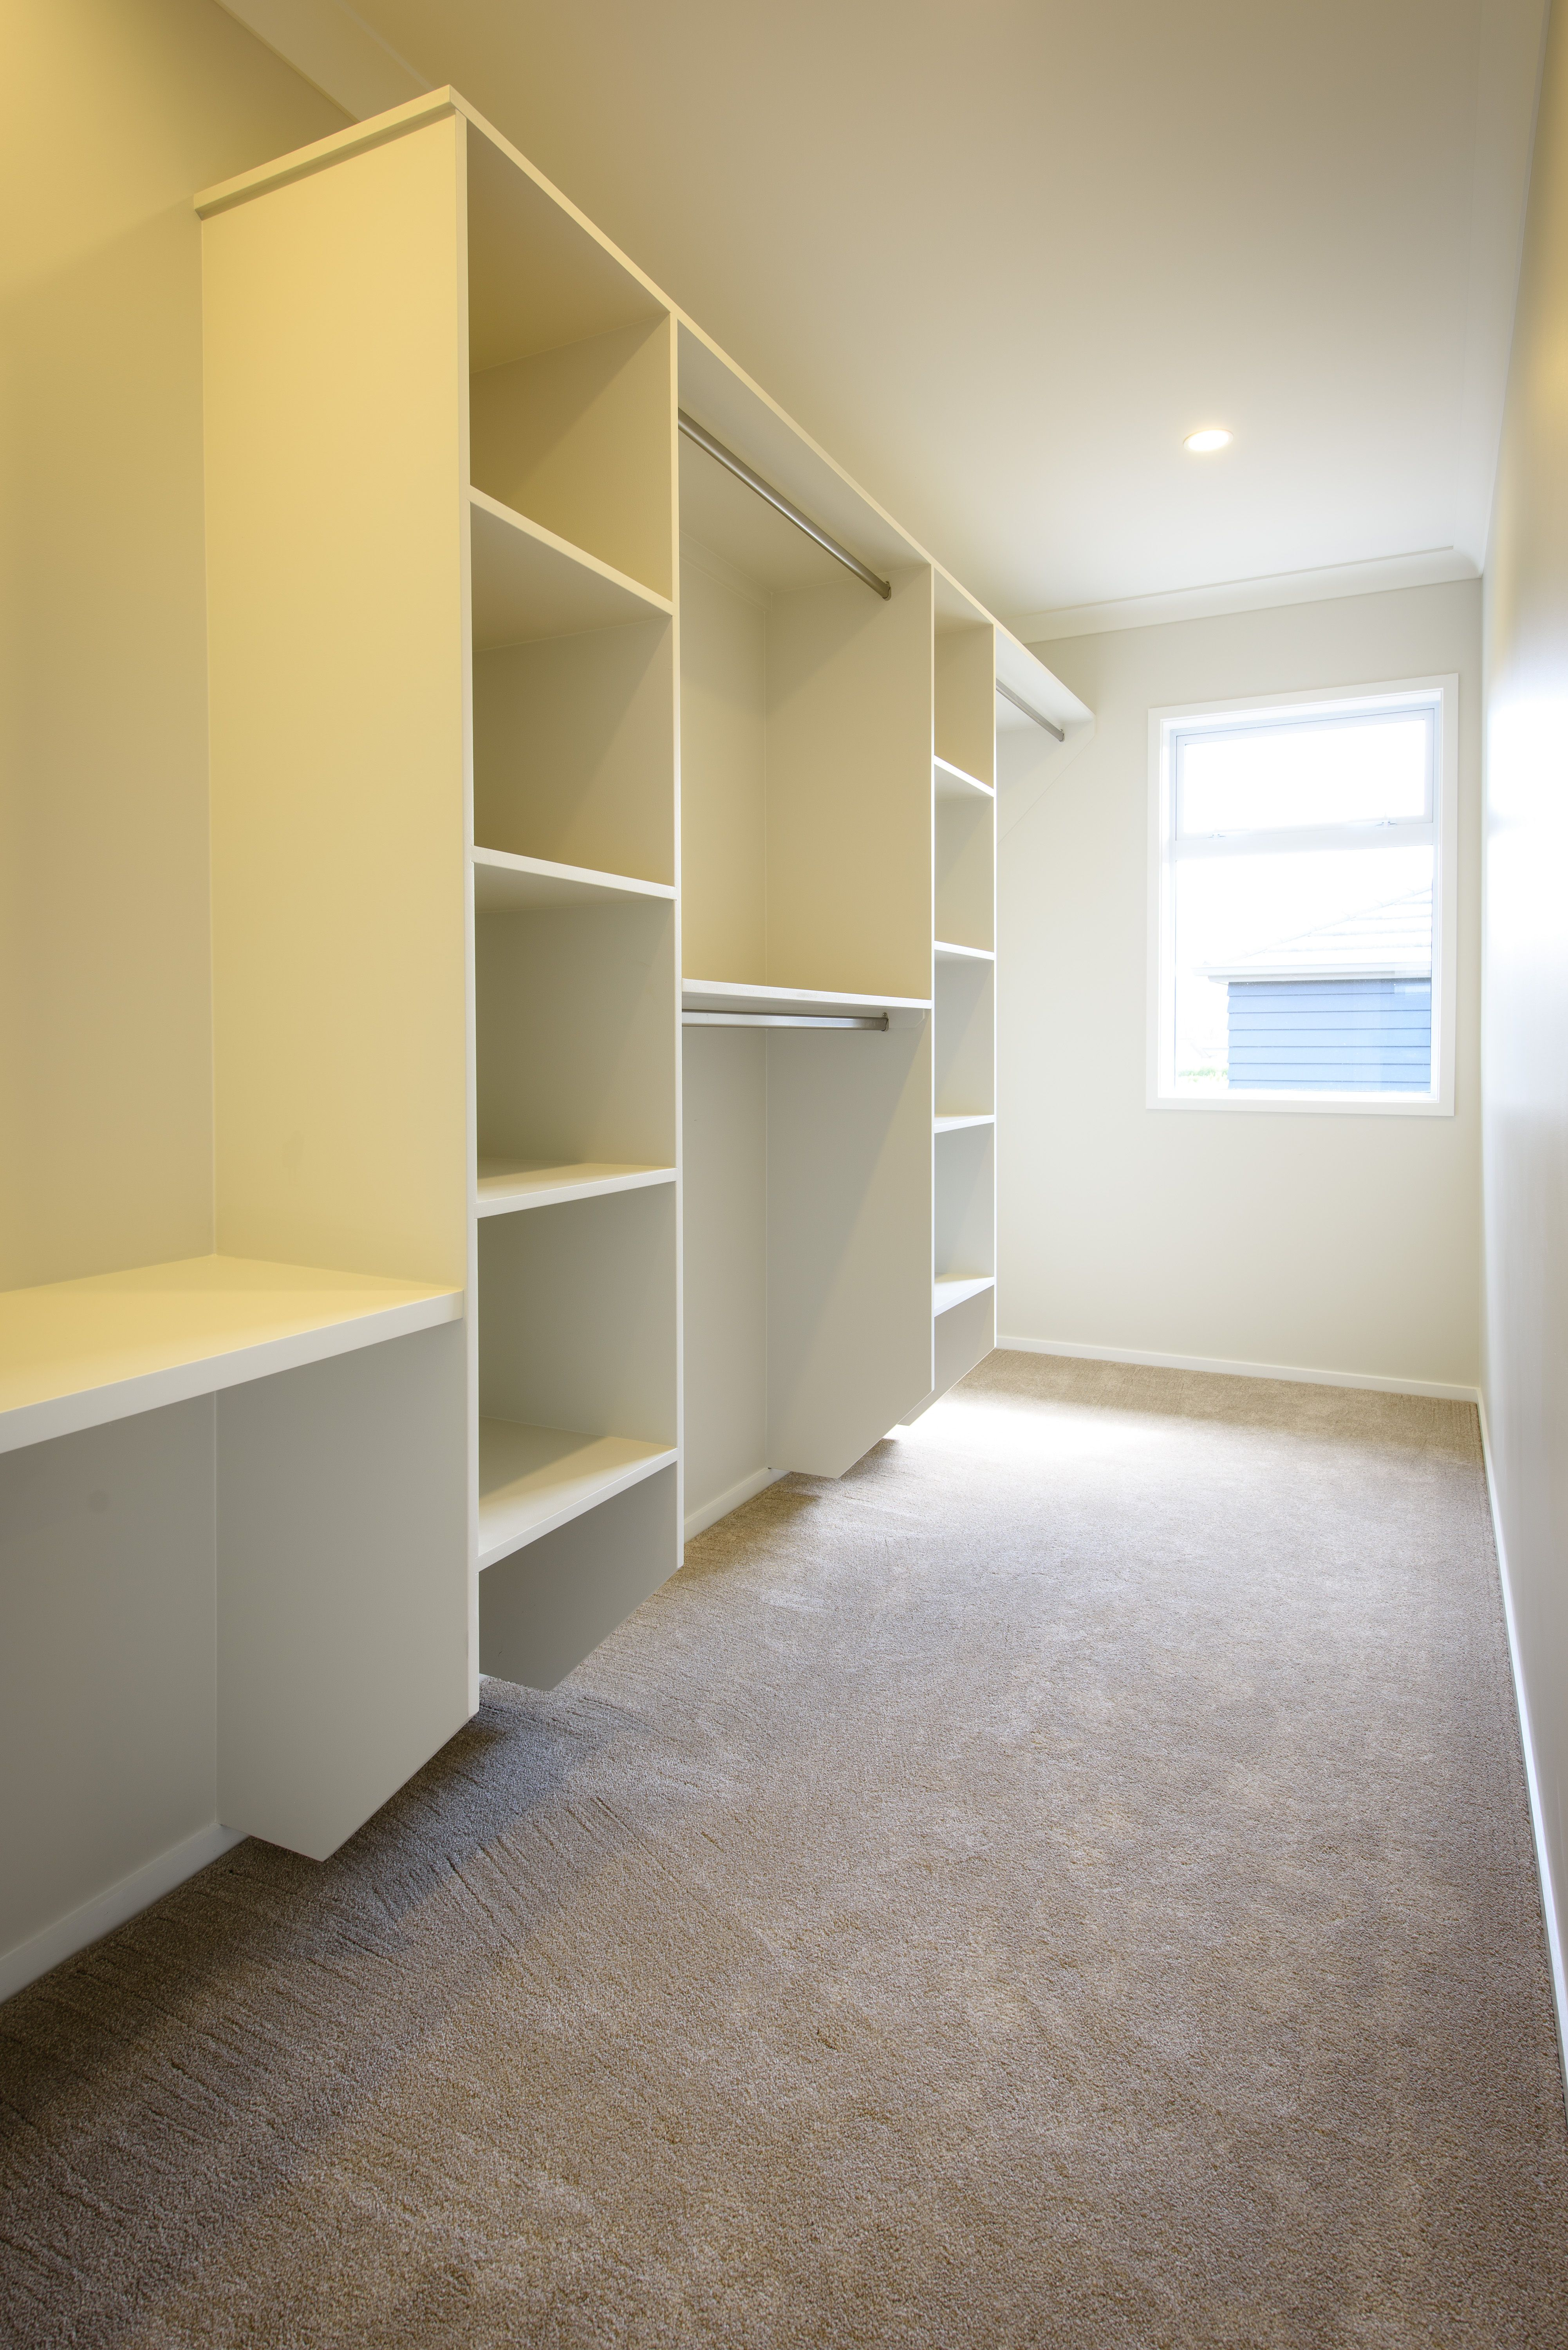 Uncategorized Closet Window a large spacious walk in closet with big window to let plenty of natural